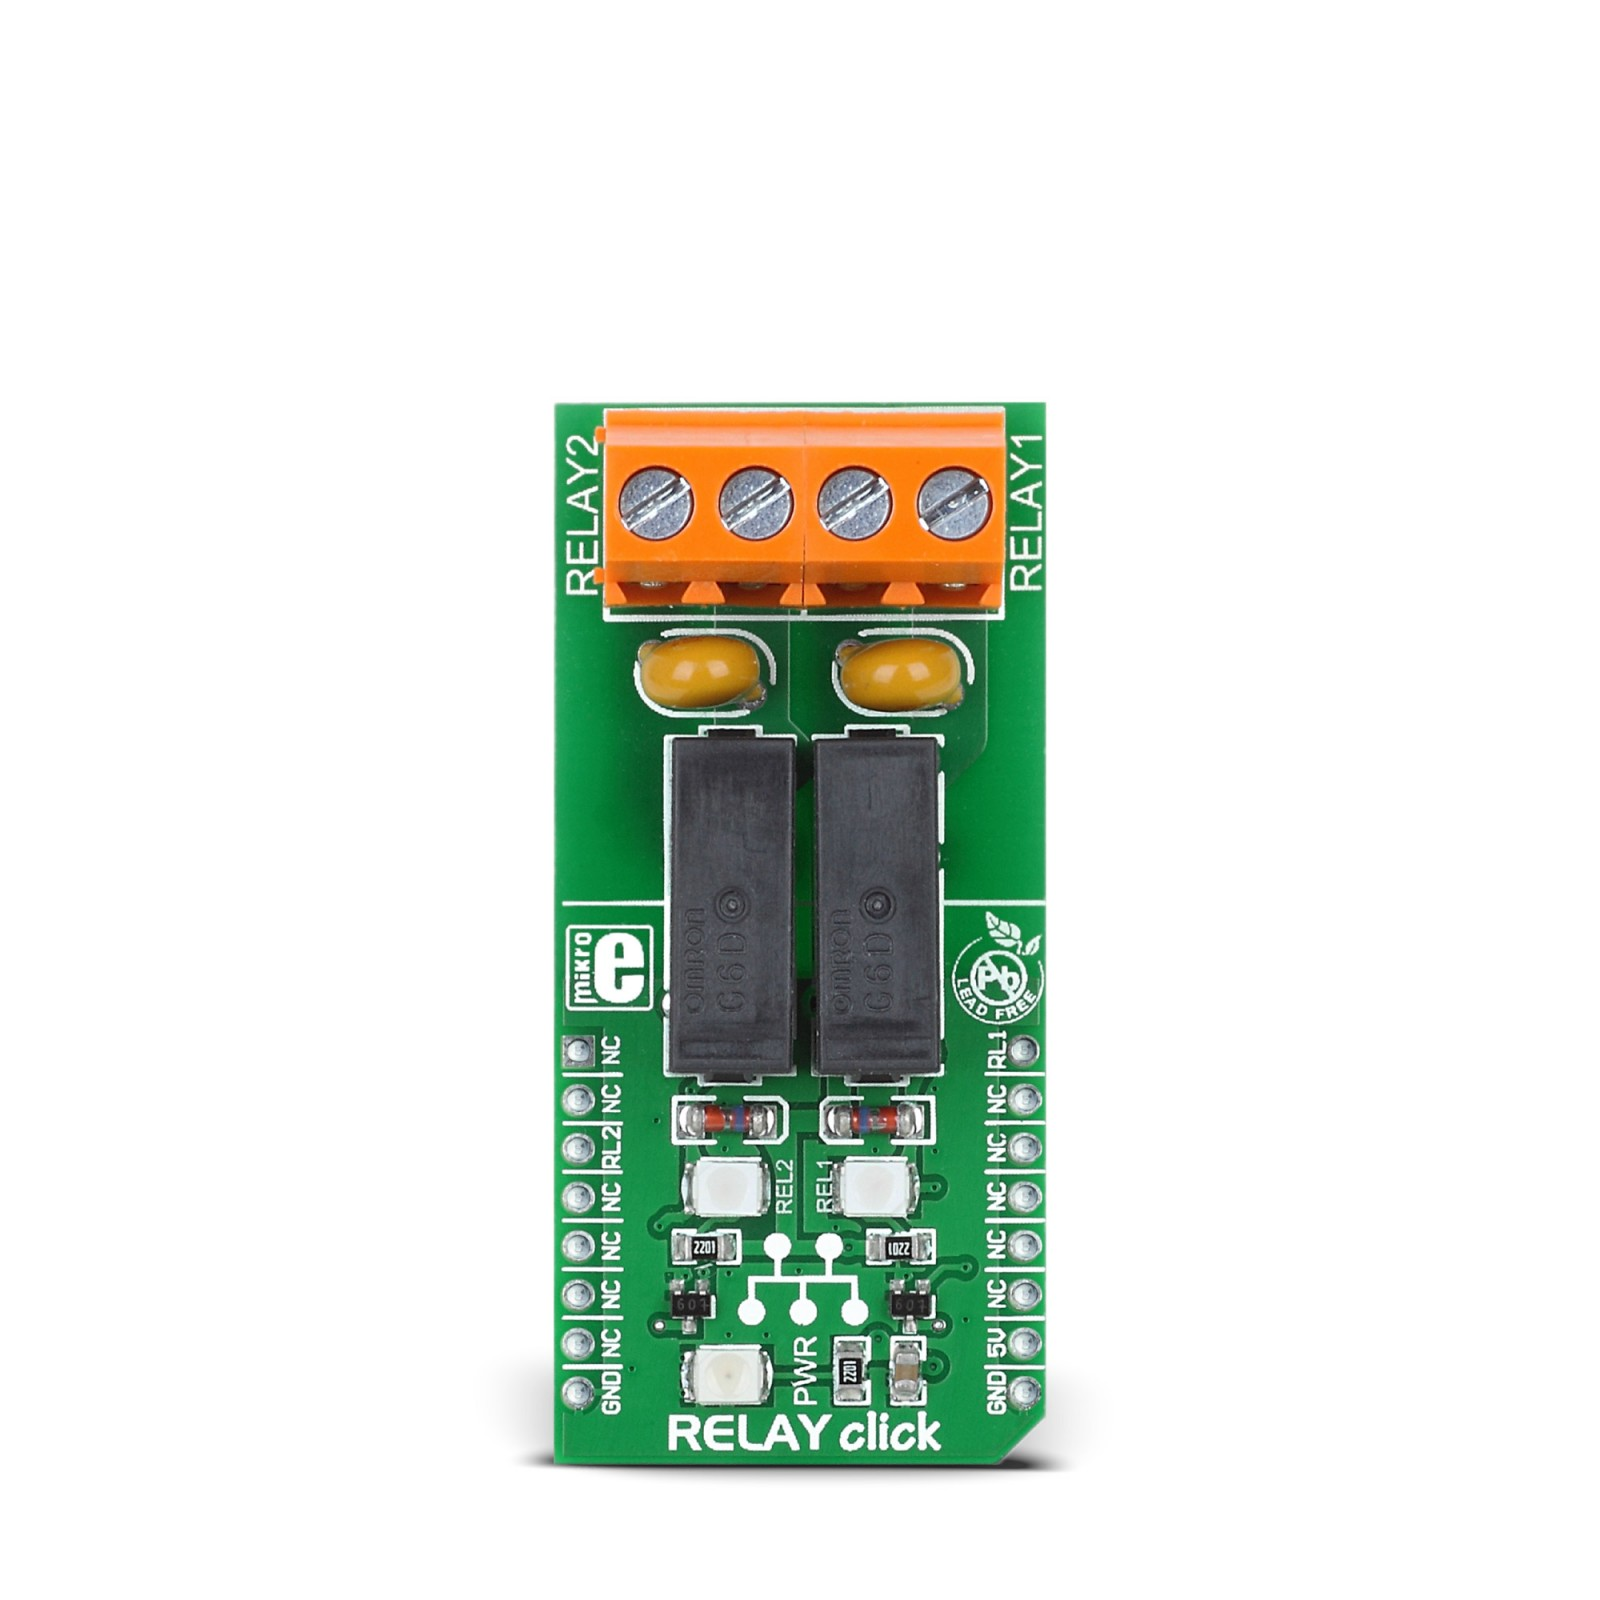 Relay Click Board Features Two G6d1aasi 5dc Power Pcb Modules Relays A Is An Electrically Operated Switch Current Flowing Mgctlbxnmzp Mgctlbxv5112 Mgctlbxlc Mgctlbxpprestashop